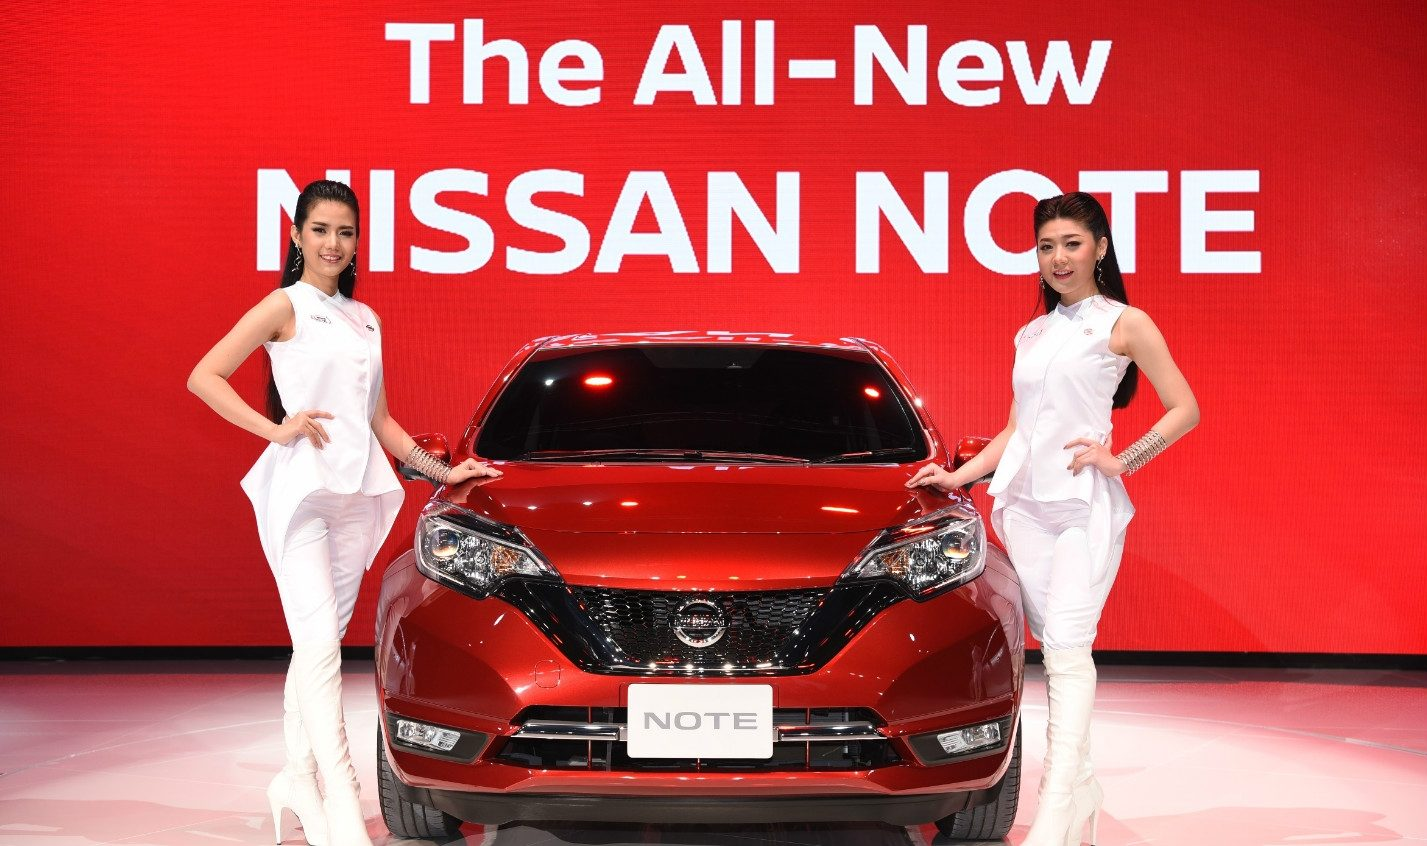 the-all-new-nissan-note-is-a-bit-hit